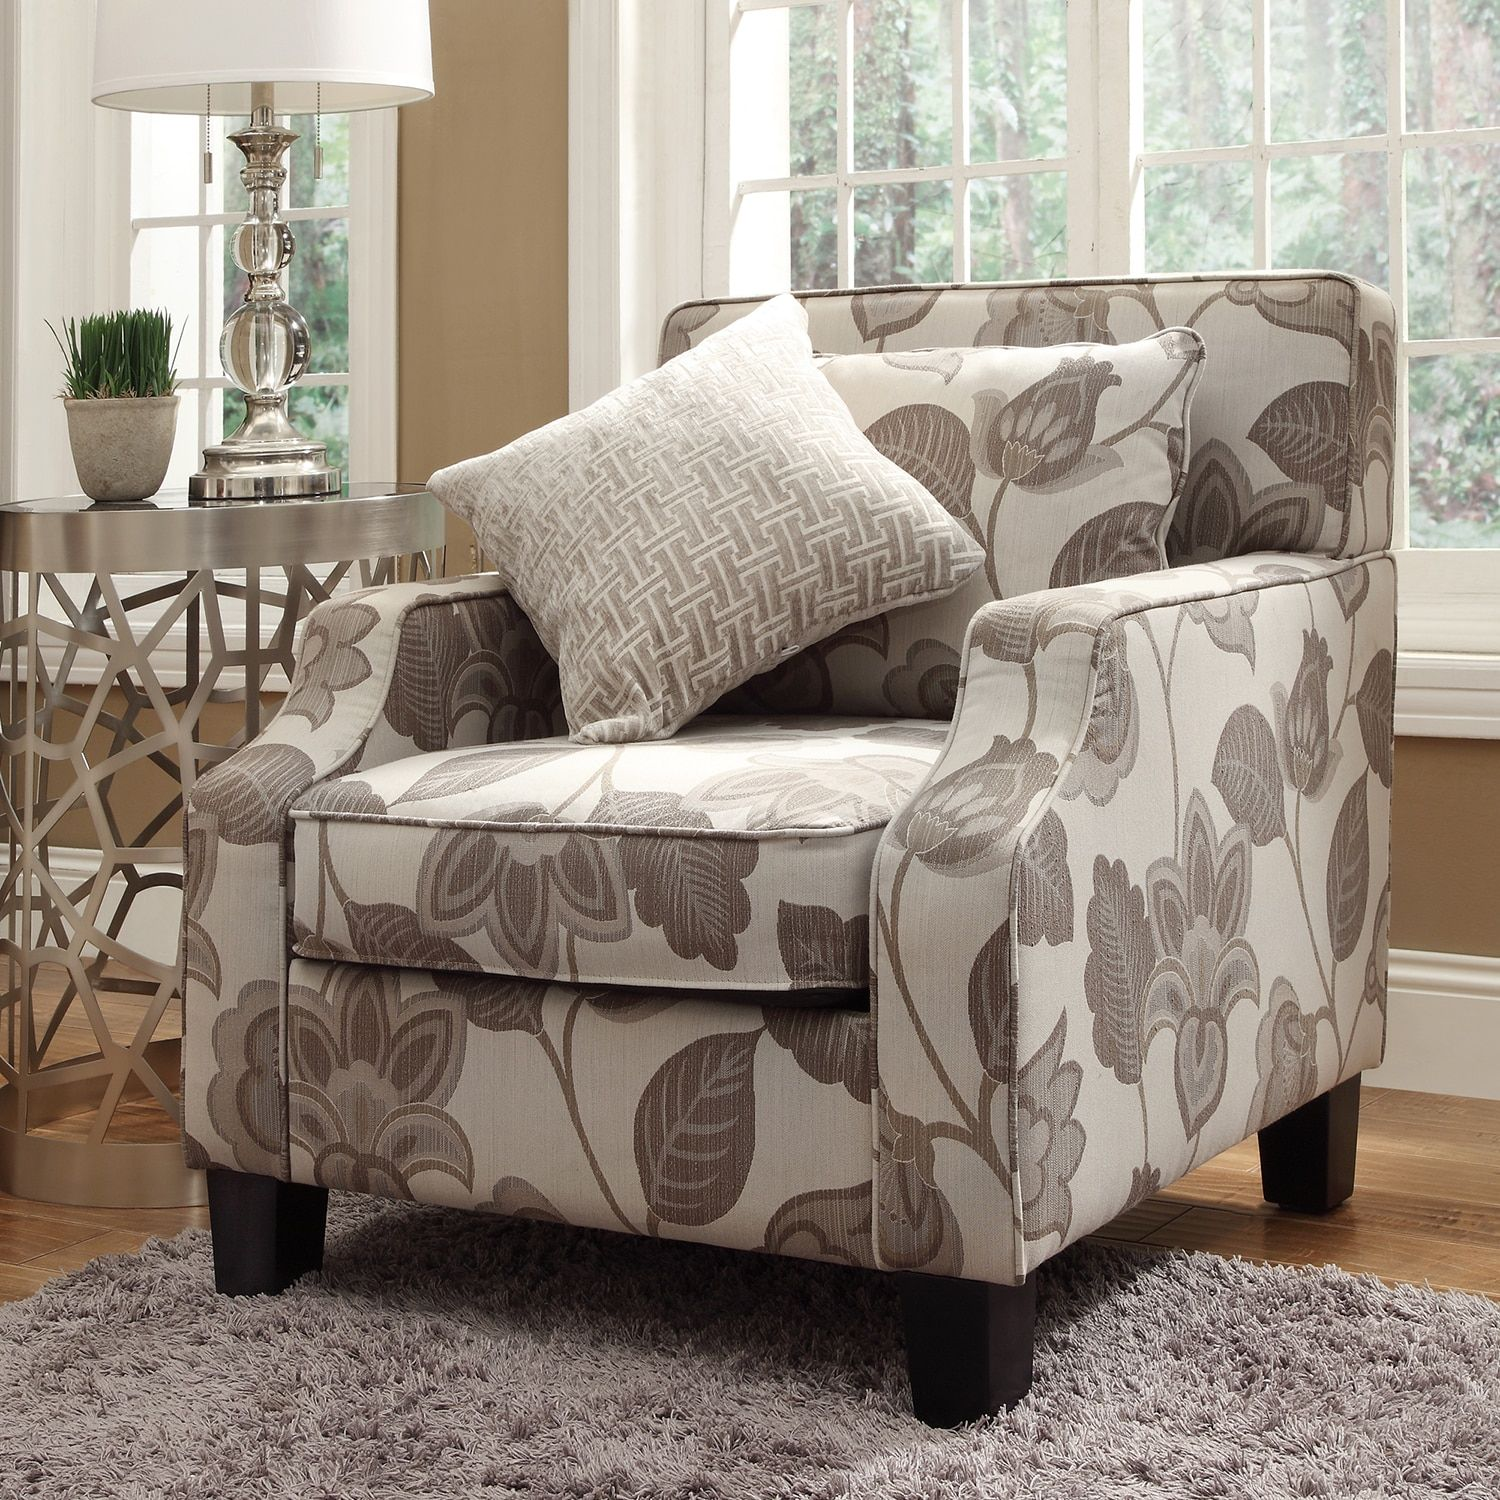 floral living room chairs create an inviting atmosphere with new